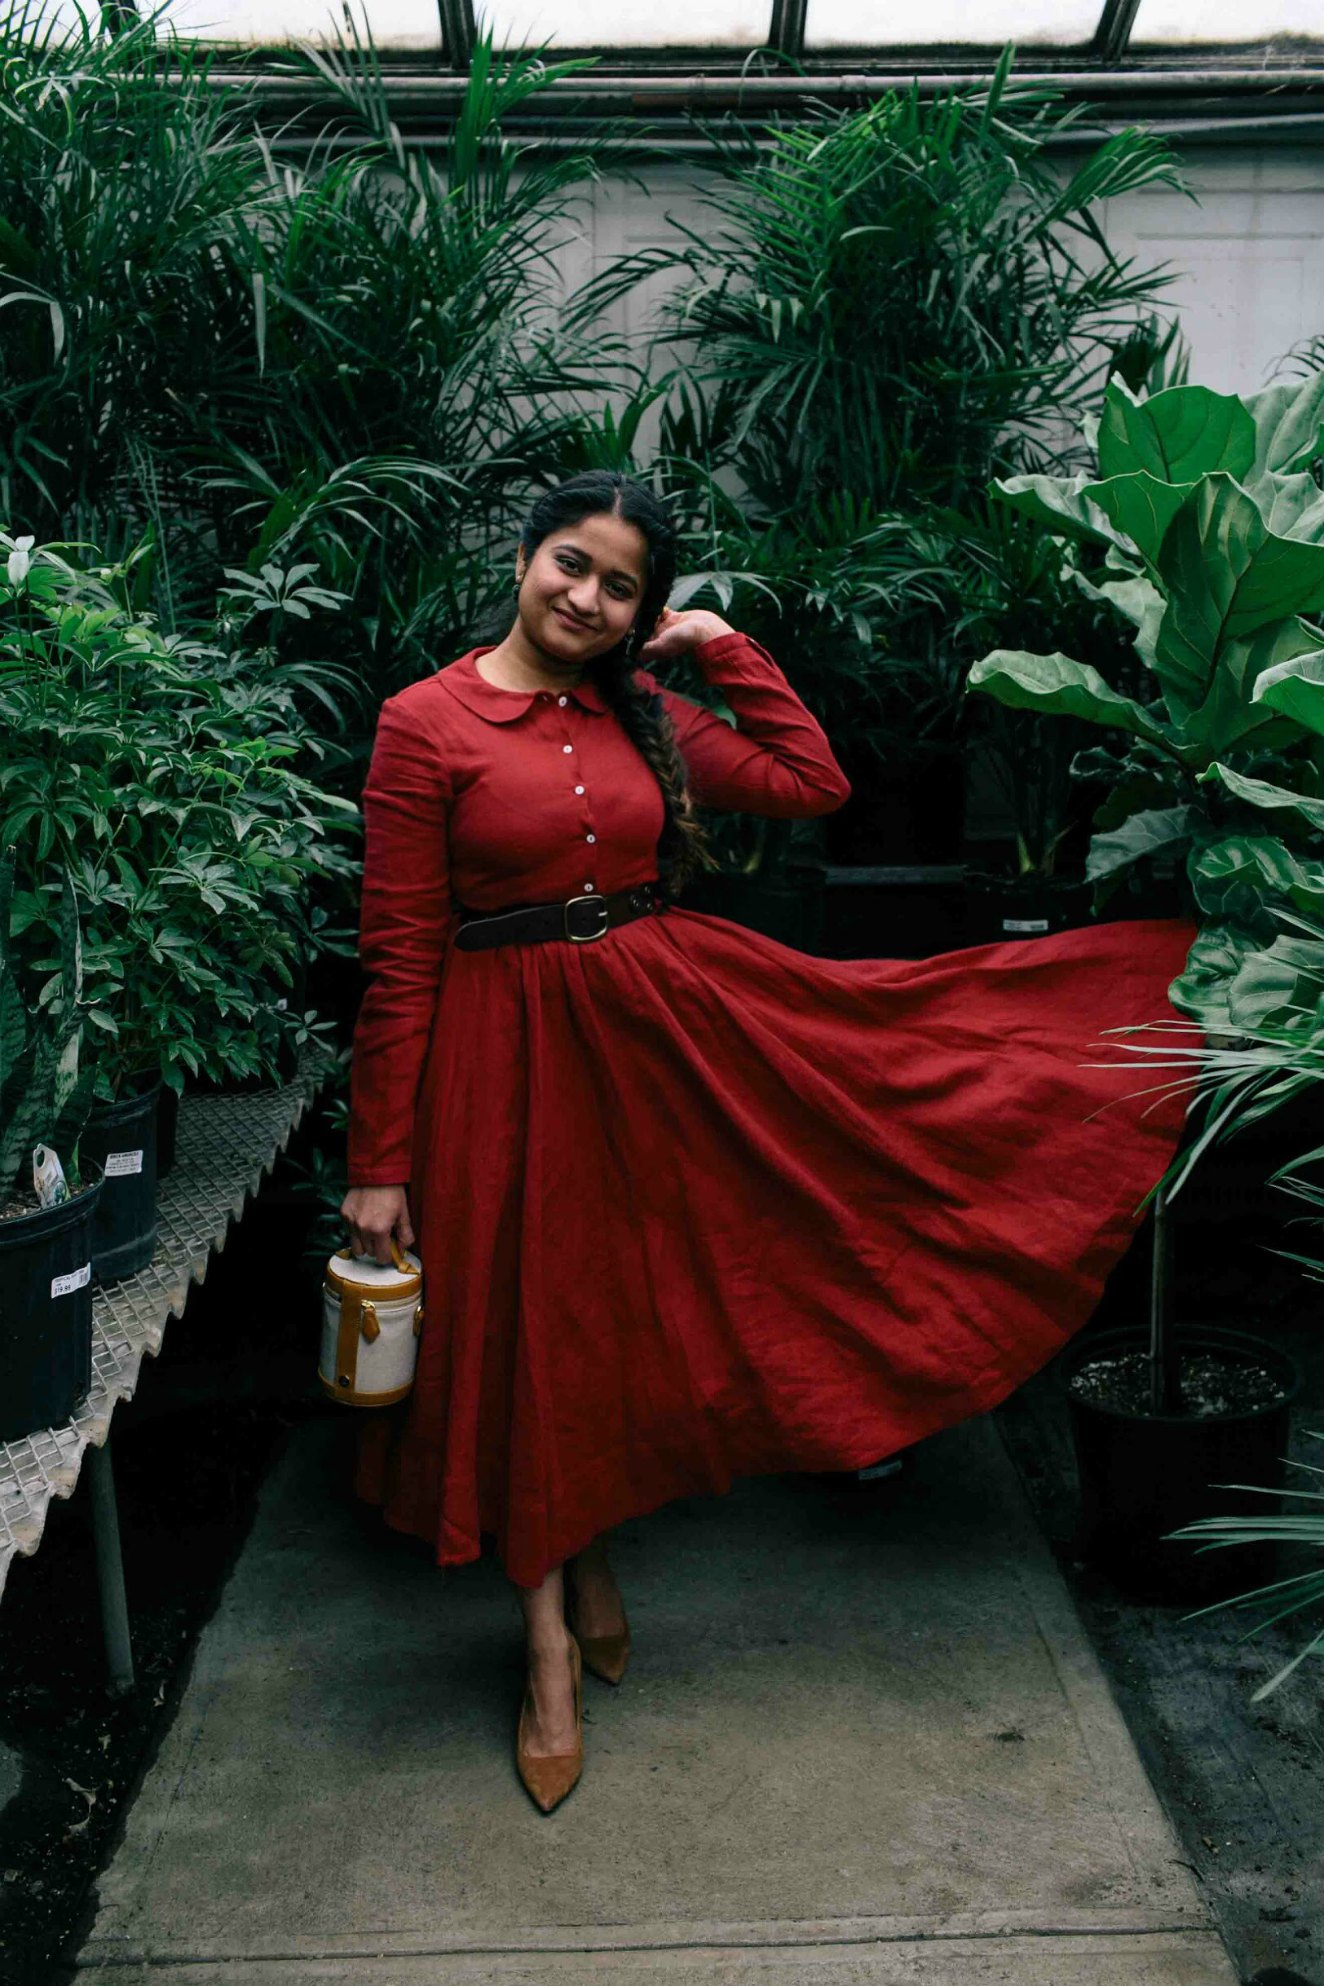 Modest Fashion and Lifestyle blog dreaming loud wearing parallel Crossbody Capsule 1 and sharing pictures from straders garden center Columbus Ohio. jpg - Son de Flor Classic Linen Dress styled by popular modest fashion blogger, Dreaming Loud.